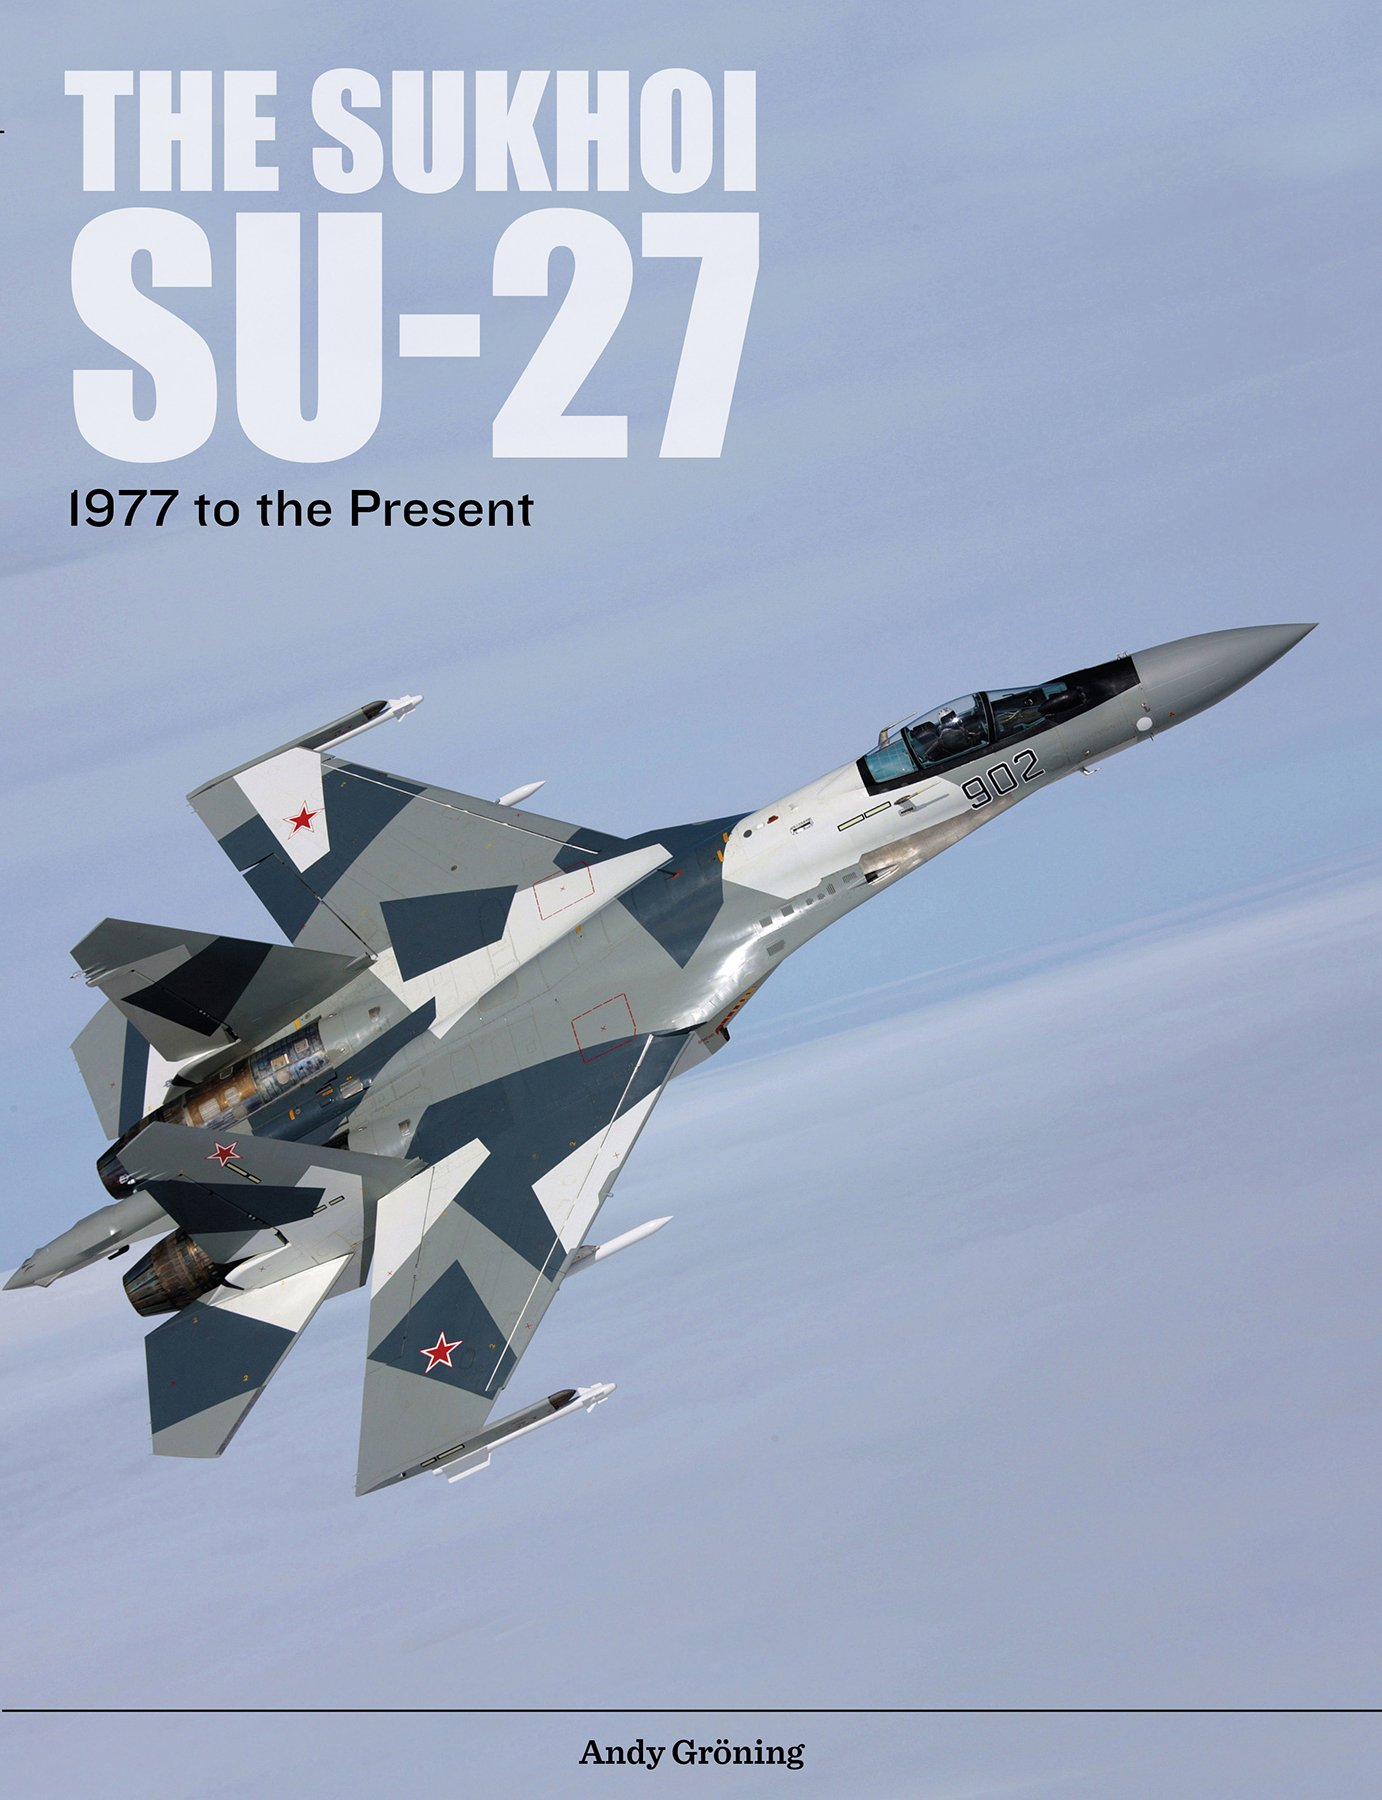 The Sukhoi Su-27: Russia's Air Superiority and Multi-role Fighter, 1977 to the  Present Hardcover – Import, 28 Nov 2018